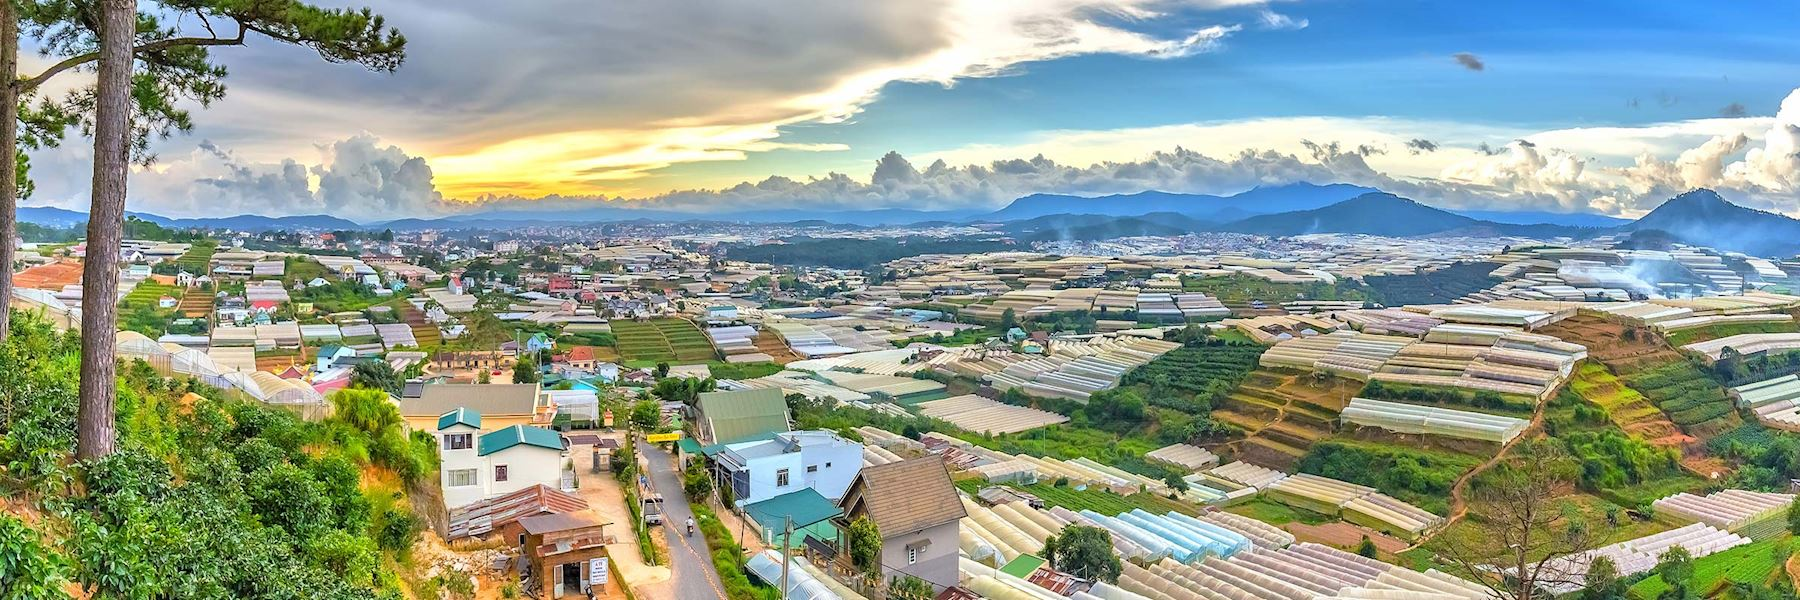 Visit Dalat On A Trip To Vietnam Audley Travel